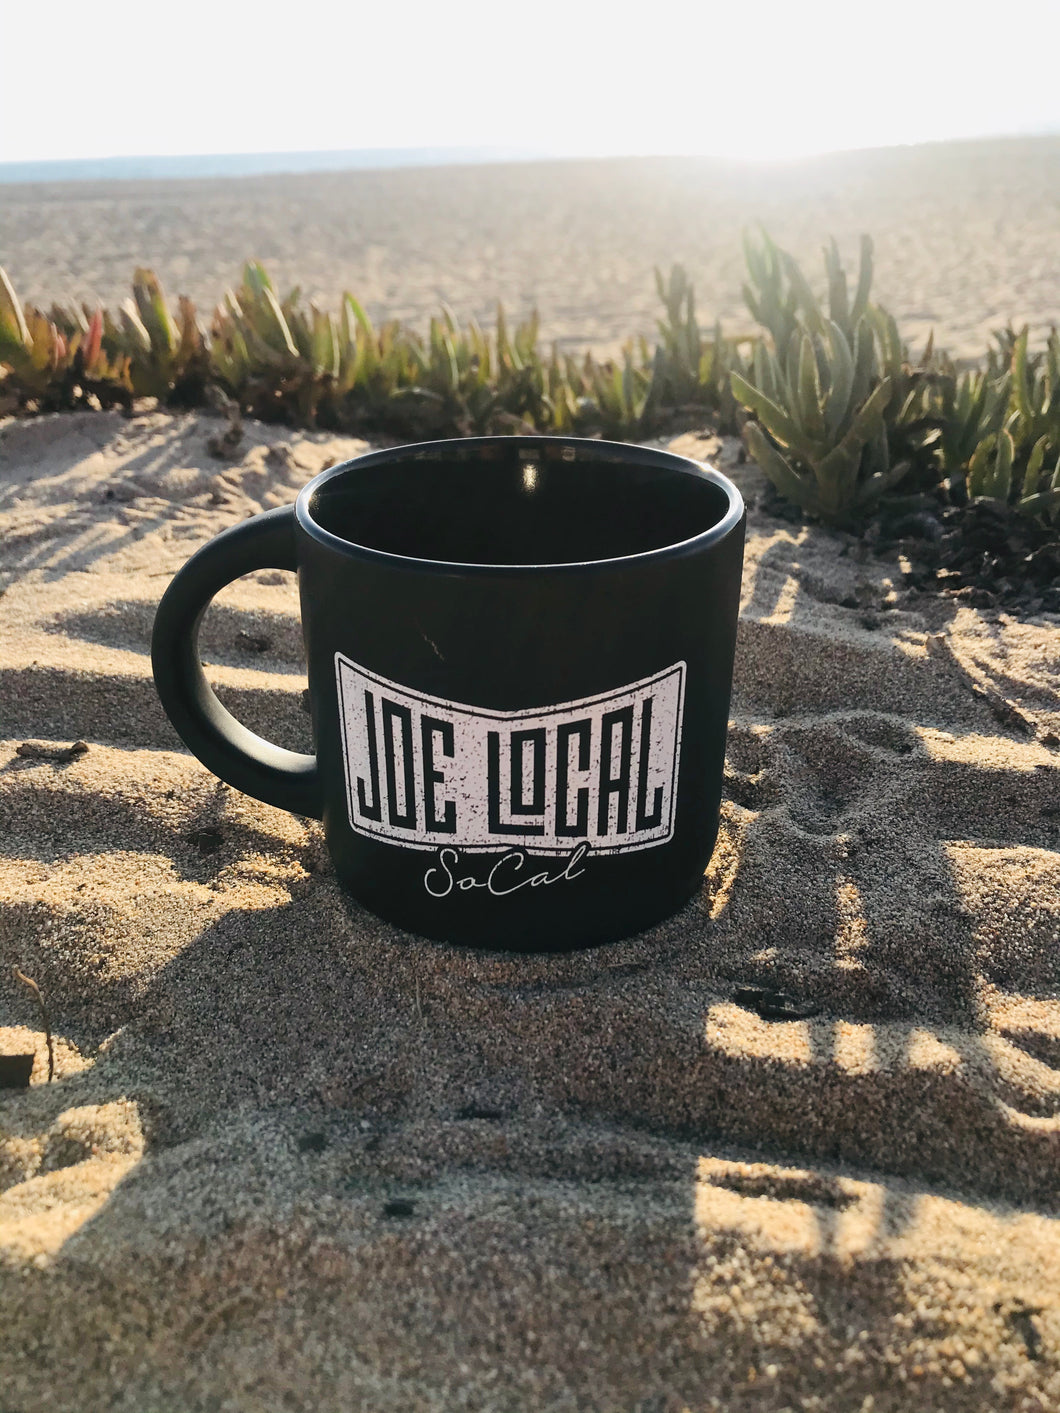 Joe Local Coffee Mug